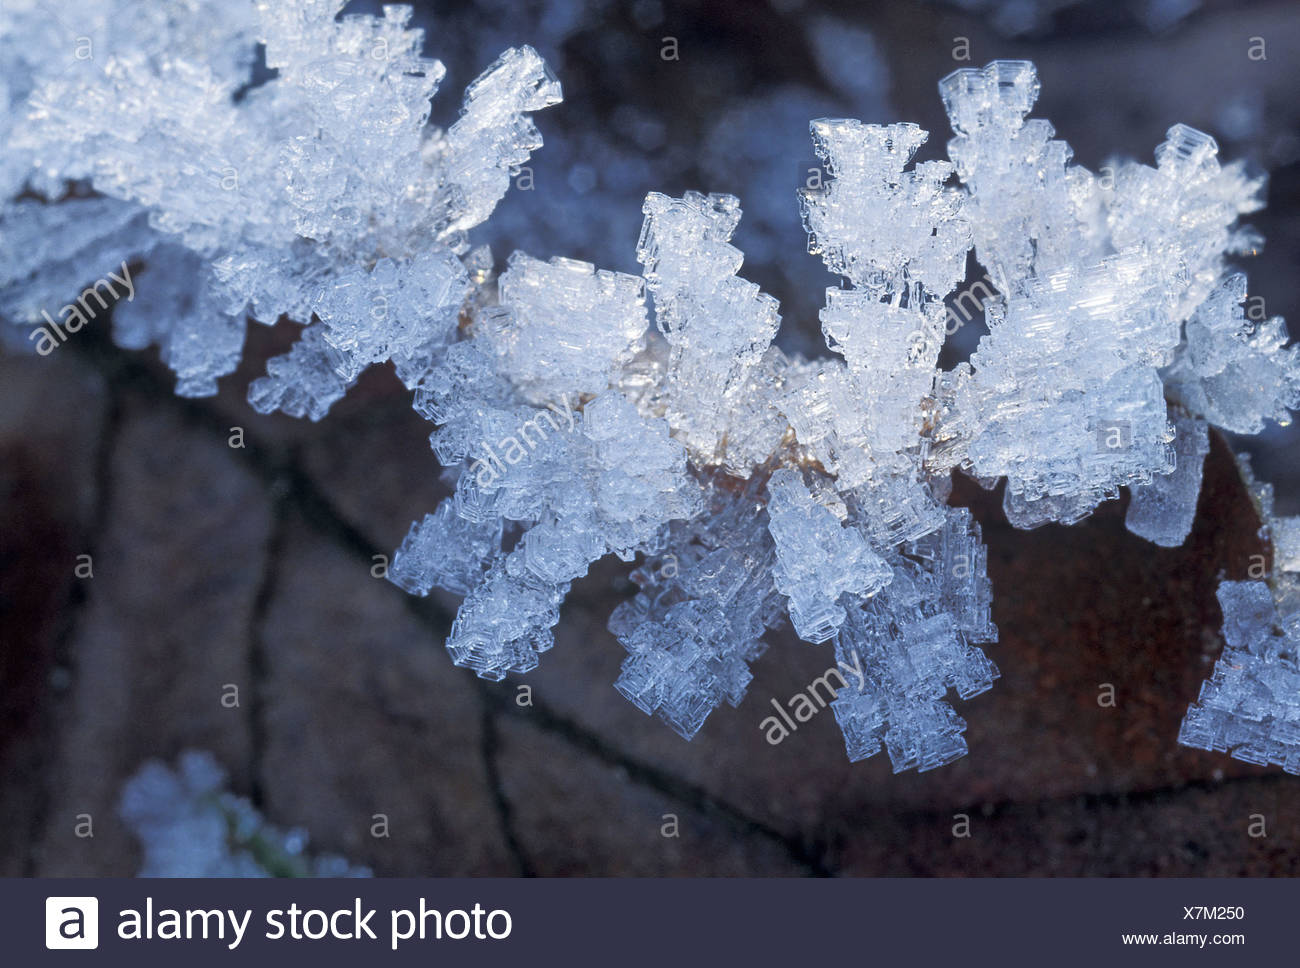 Fine white hoar frost, ice crystals on a leaf, Switzerland - Stock Image